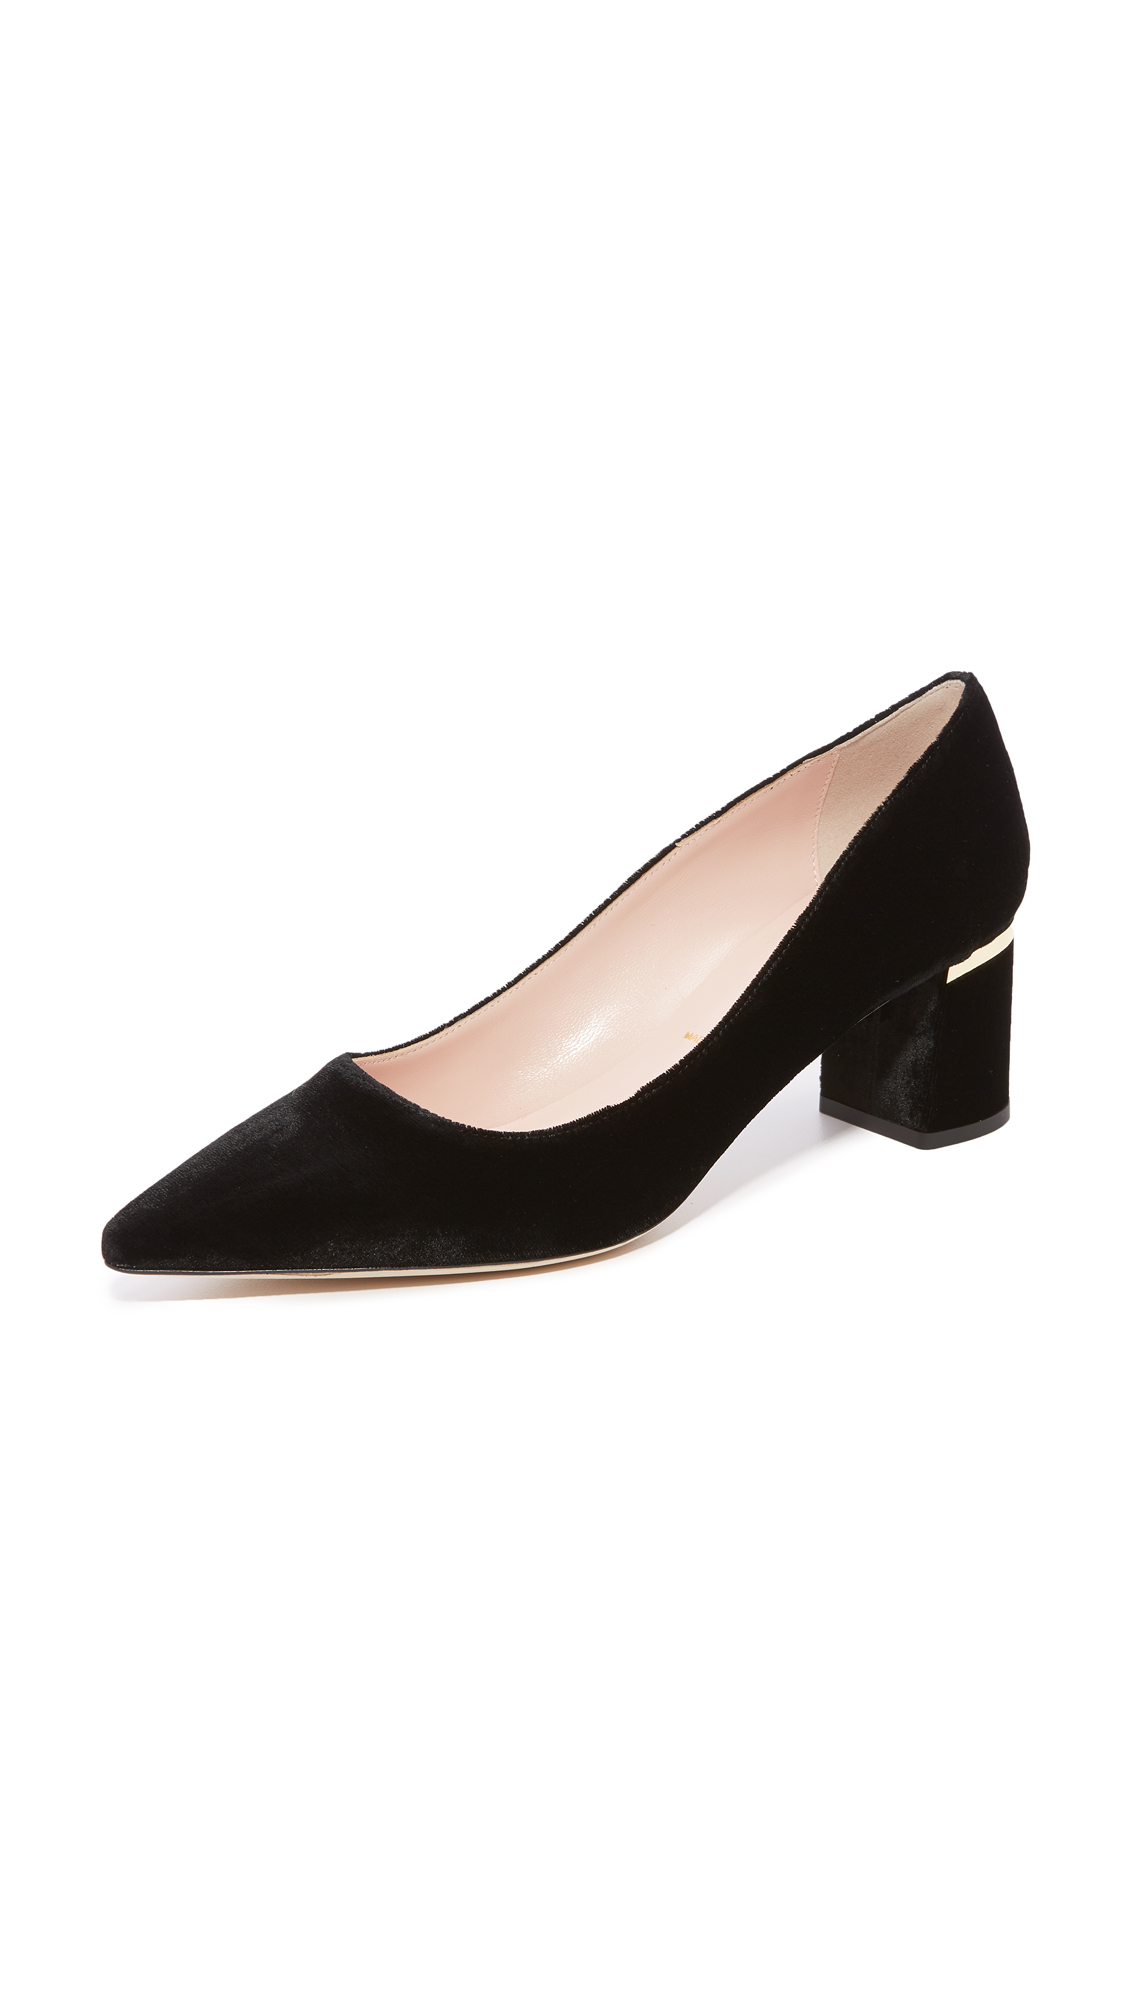 Kate Spade New York Milan Too Pointed Toe Pumps - Black